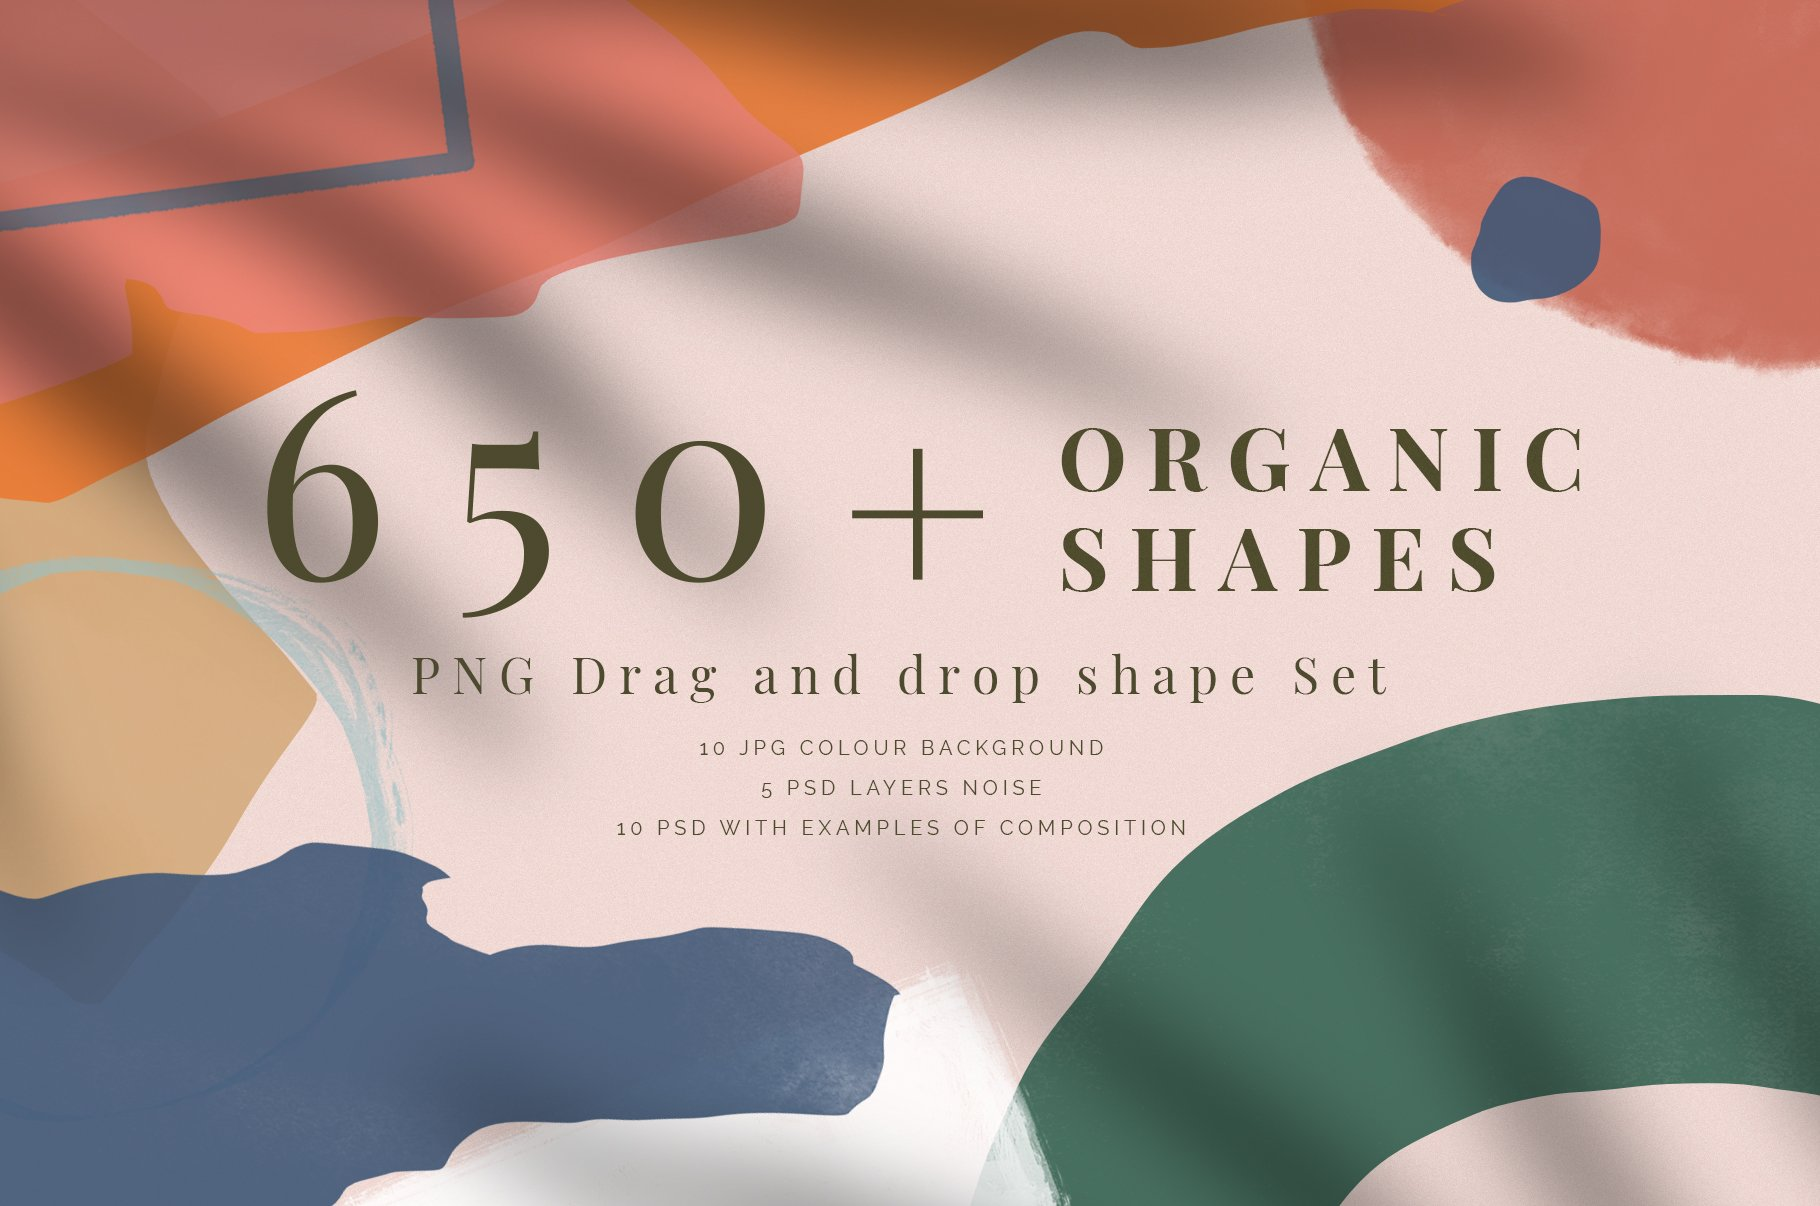 650 Organic Shapes To Drag And Drop Custom Designed Graphics Creative Market